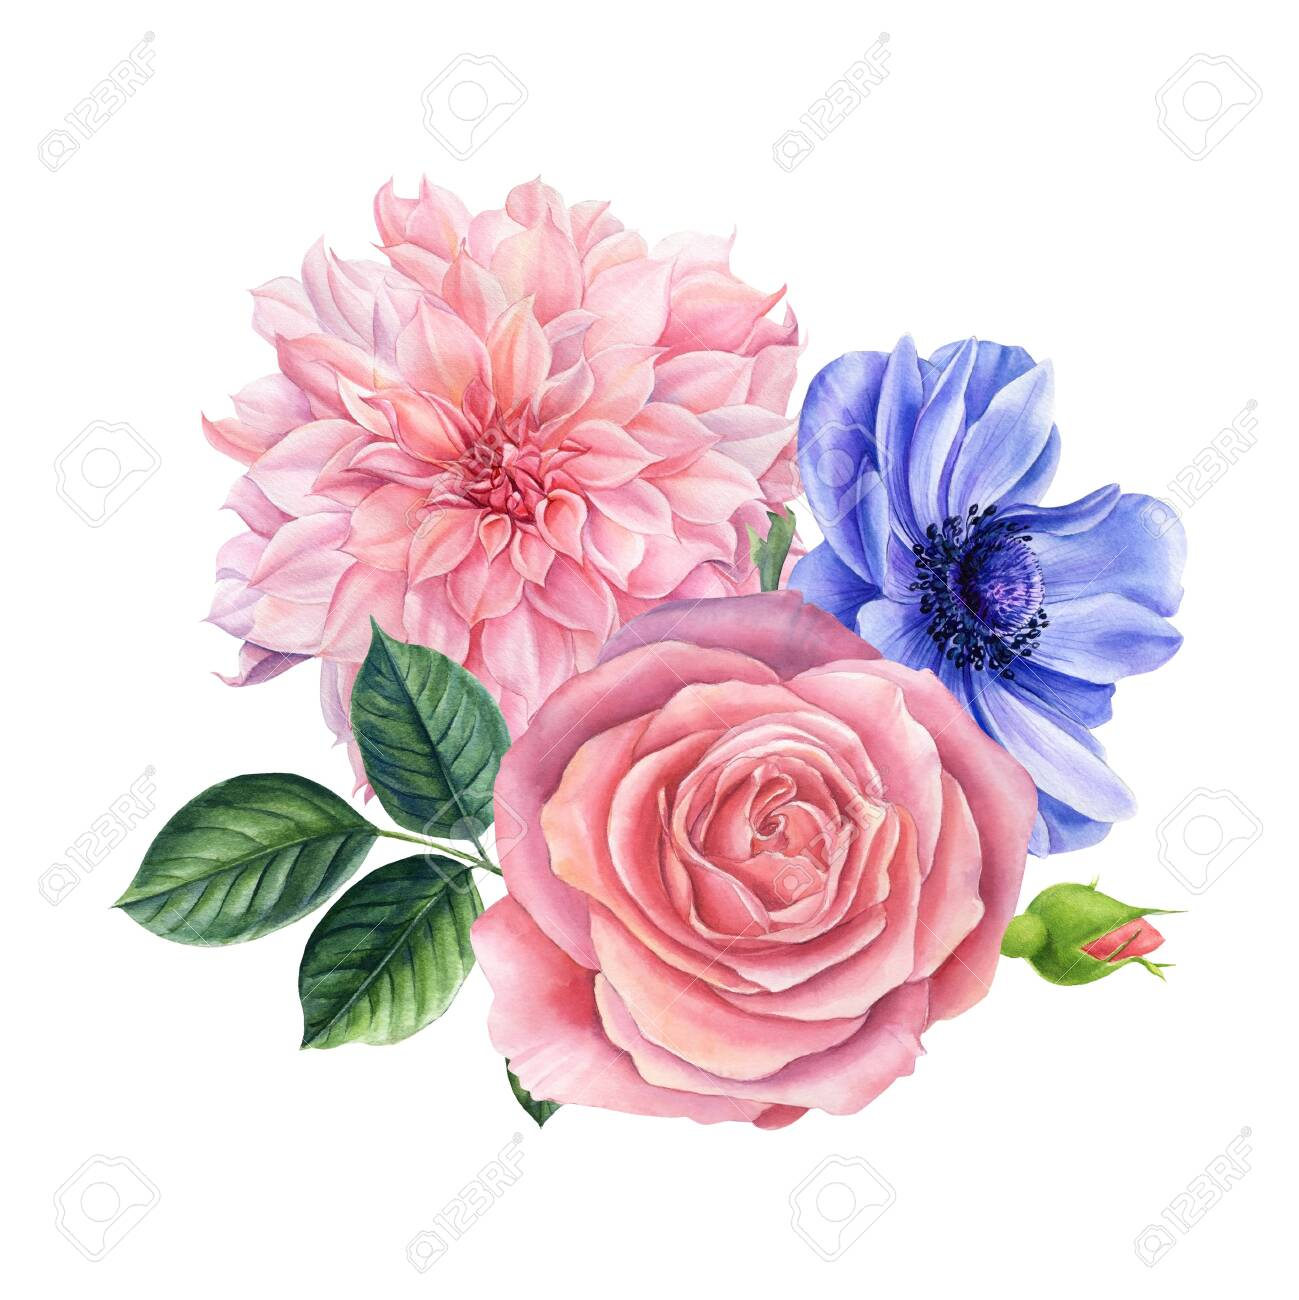 Watercolor Delicate Flowers Blue Anemones Roses Dahlias Bouquet Stock Photo Picture And Royalty Free Image Image 152020143